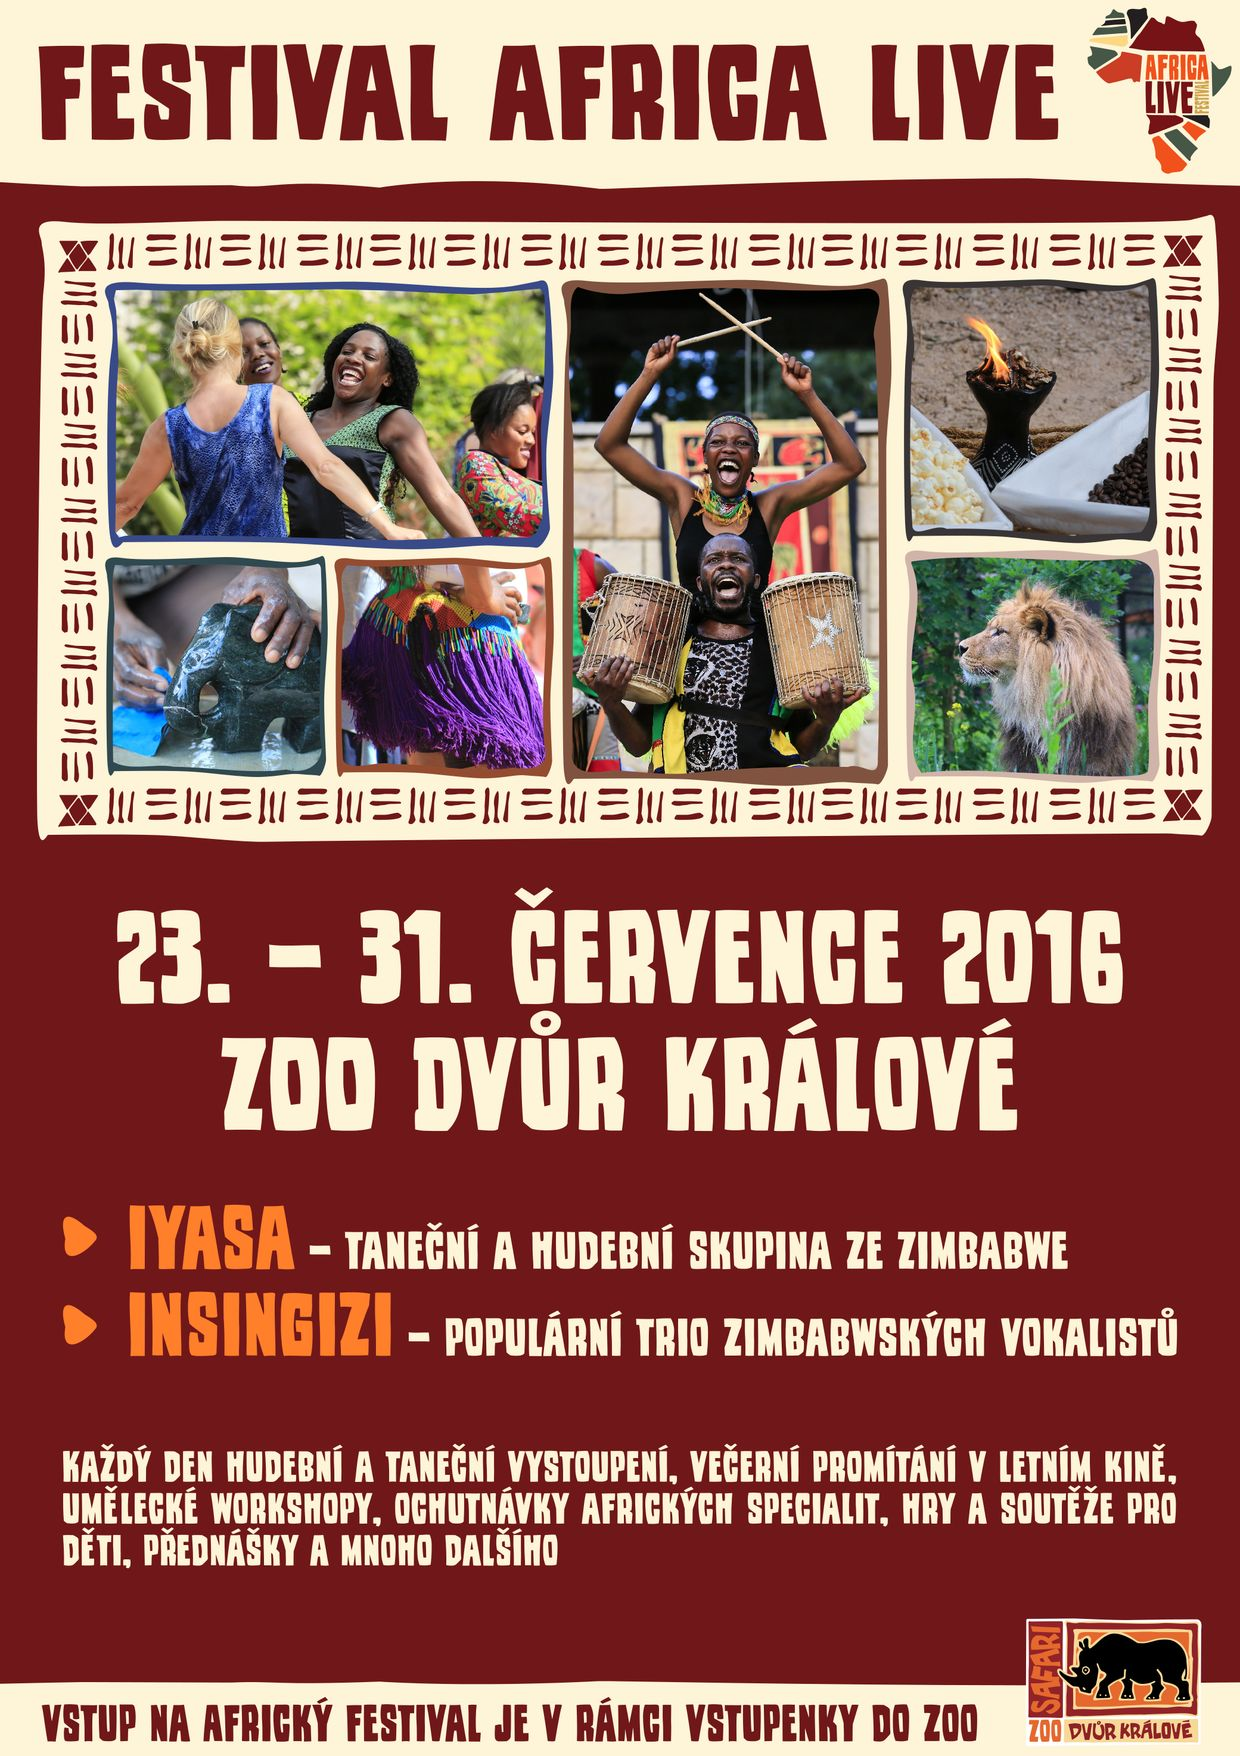 Festival Africa Live 2016